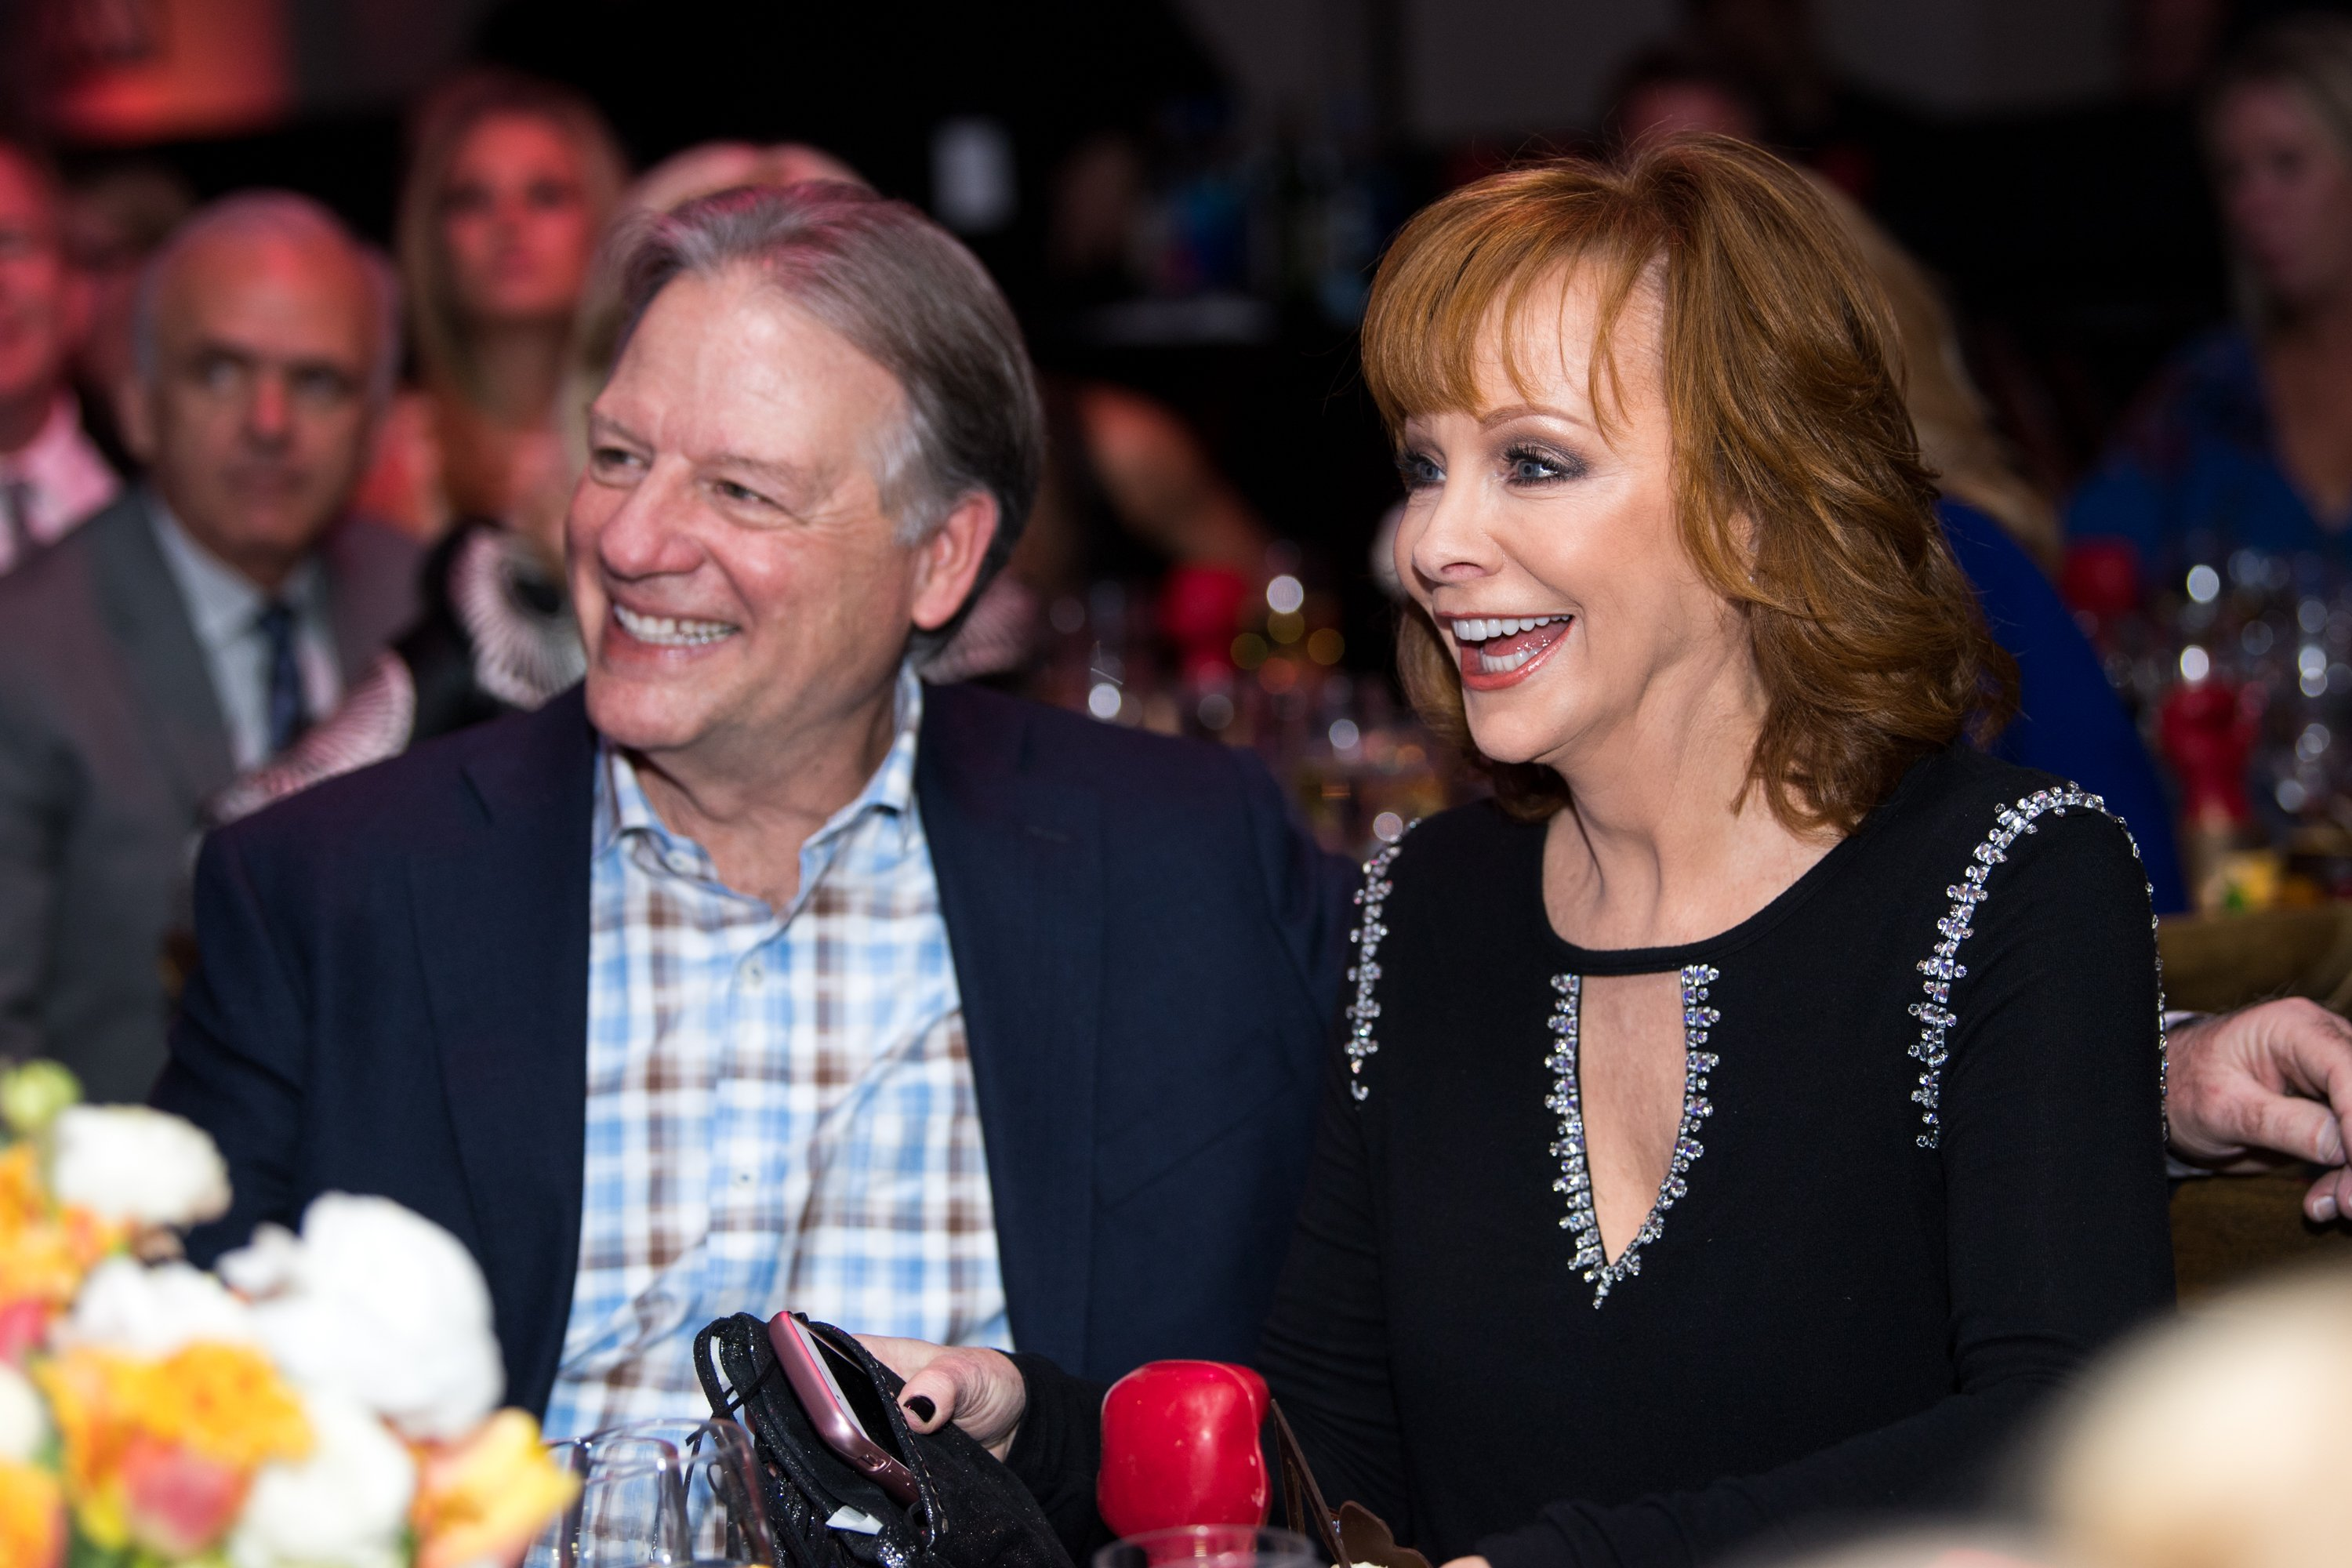 Image Credits: Getty Images | Reba and Lasuzzo are no longer dating